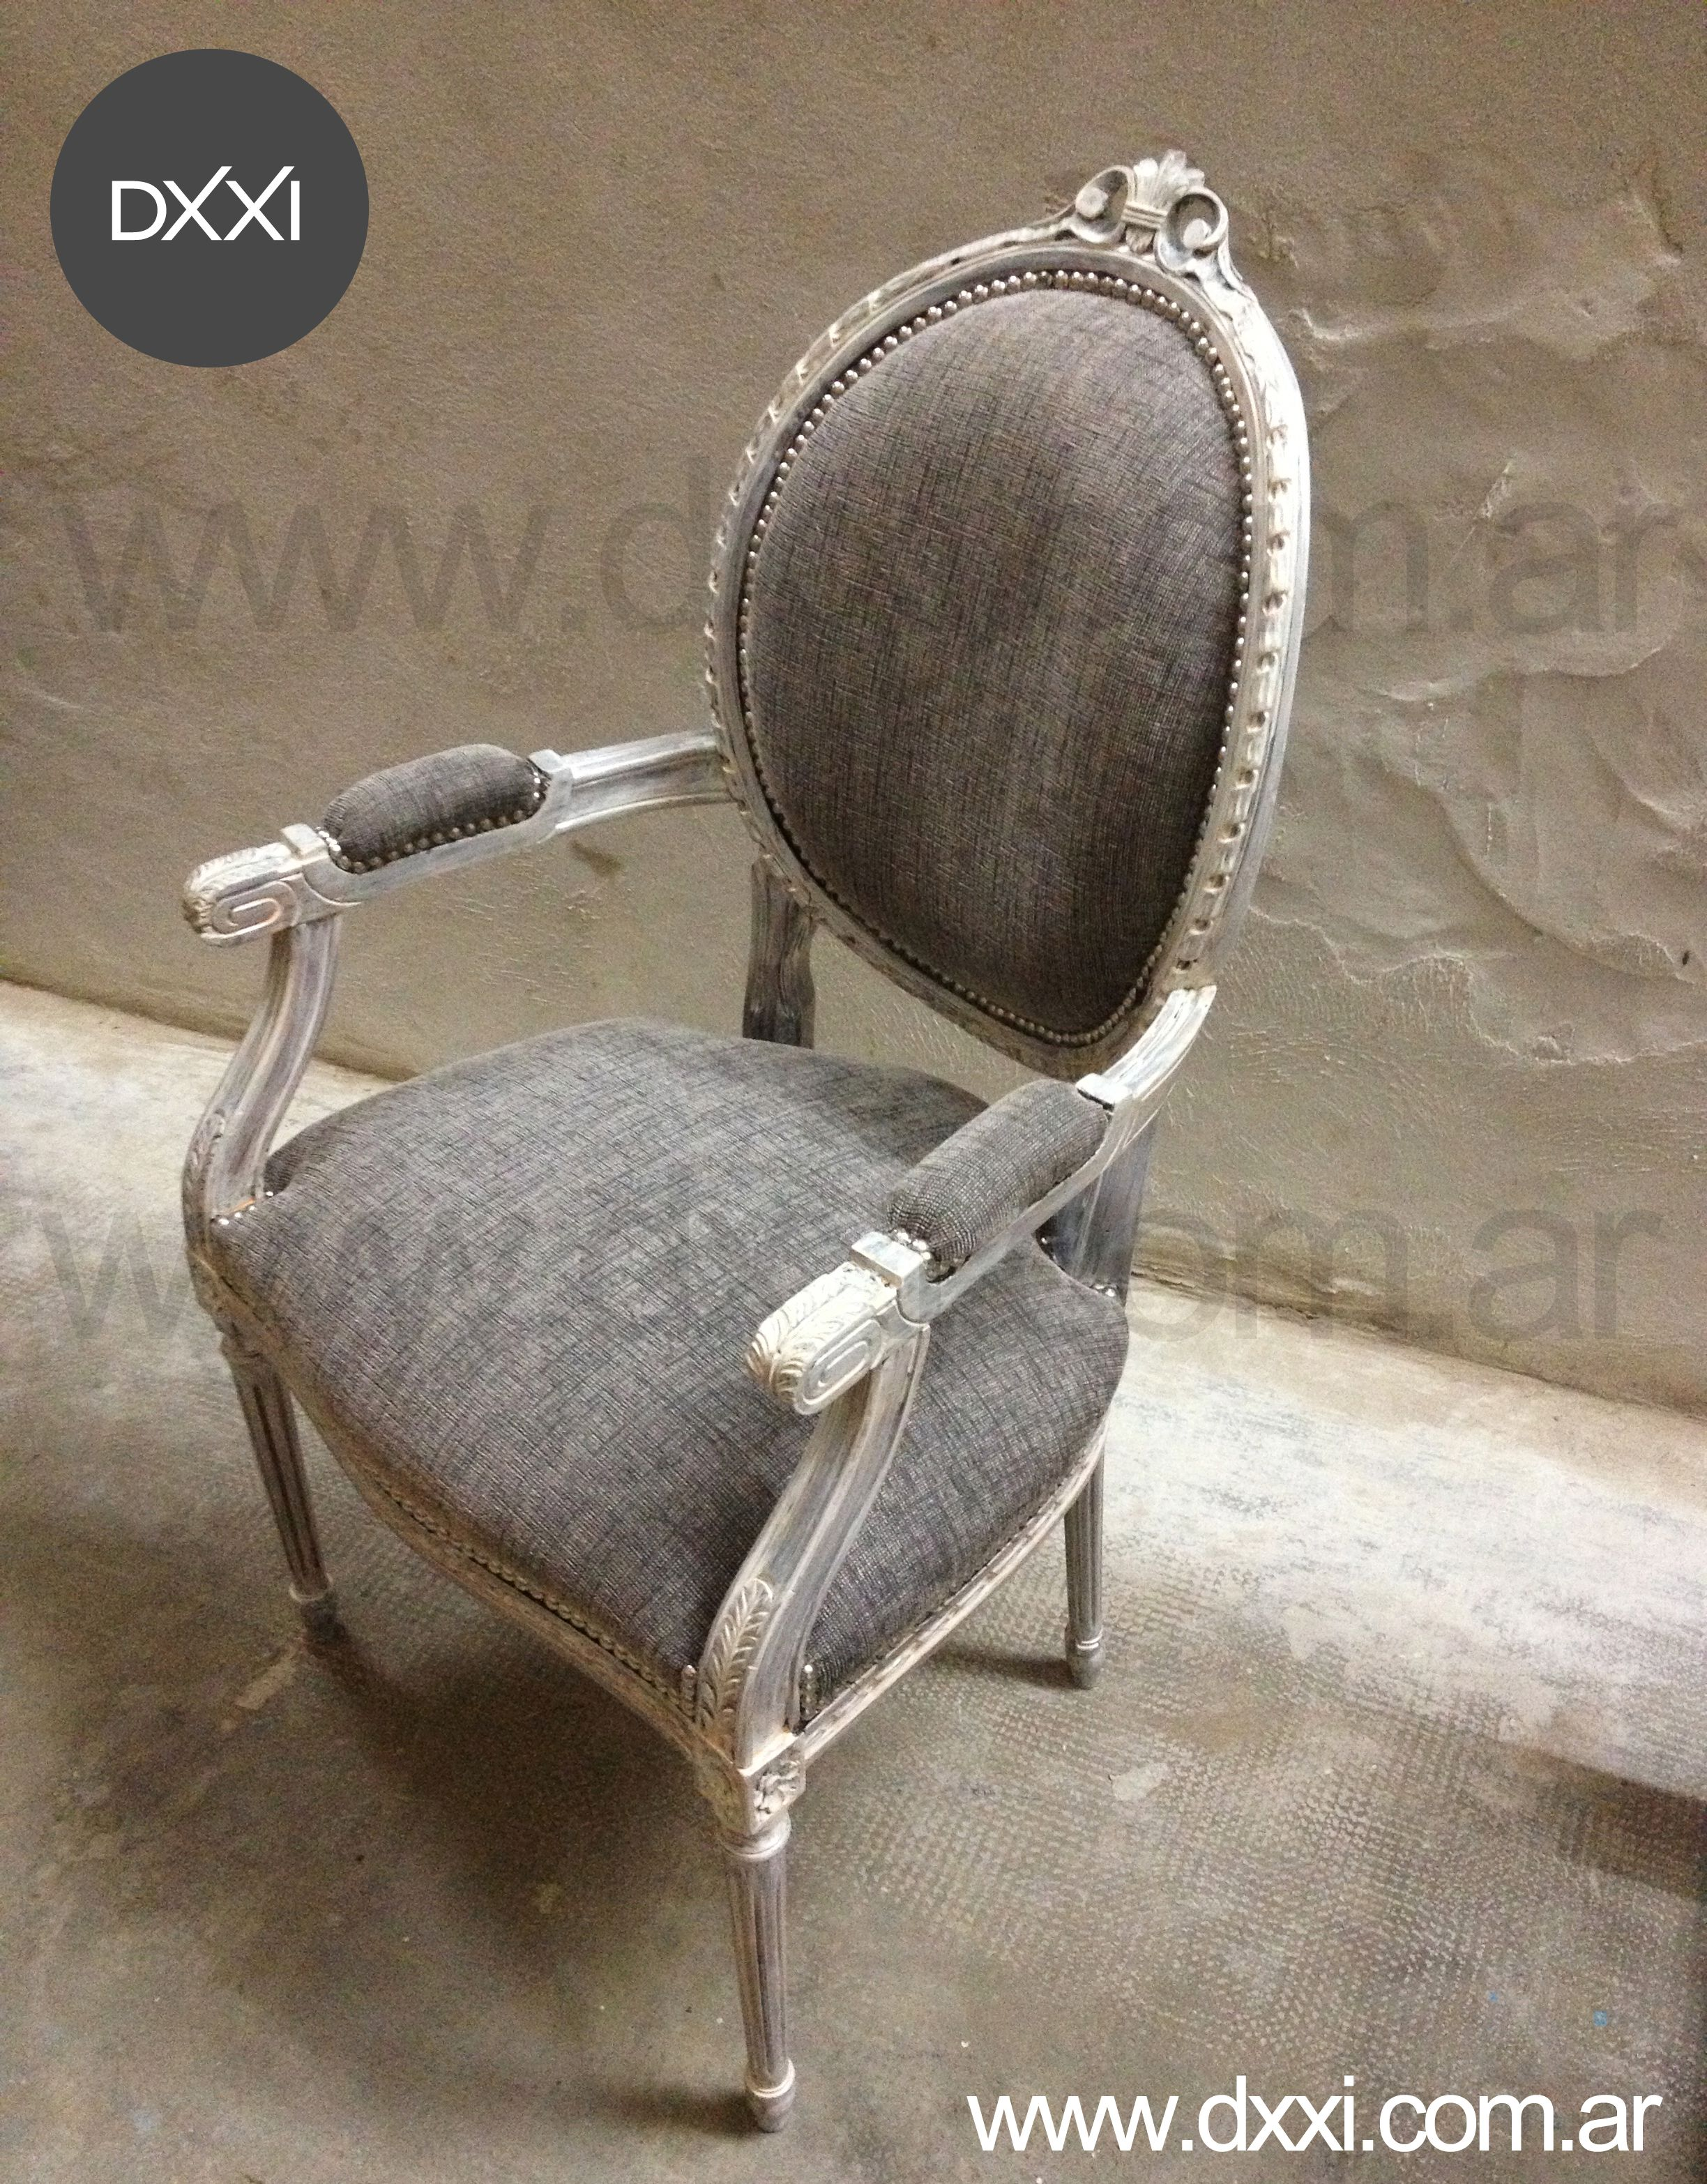 Restauracion silla luis xvi dxxi luisxvi chair muebles furniture estilo - Sillas luis xvi ...